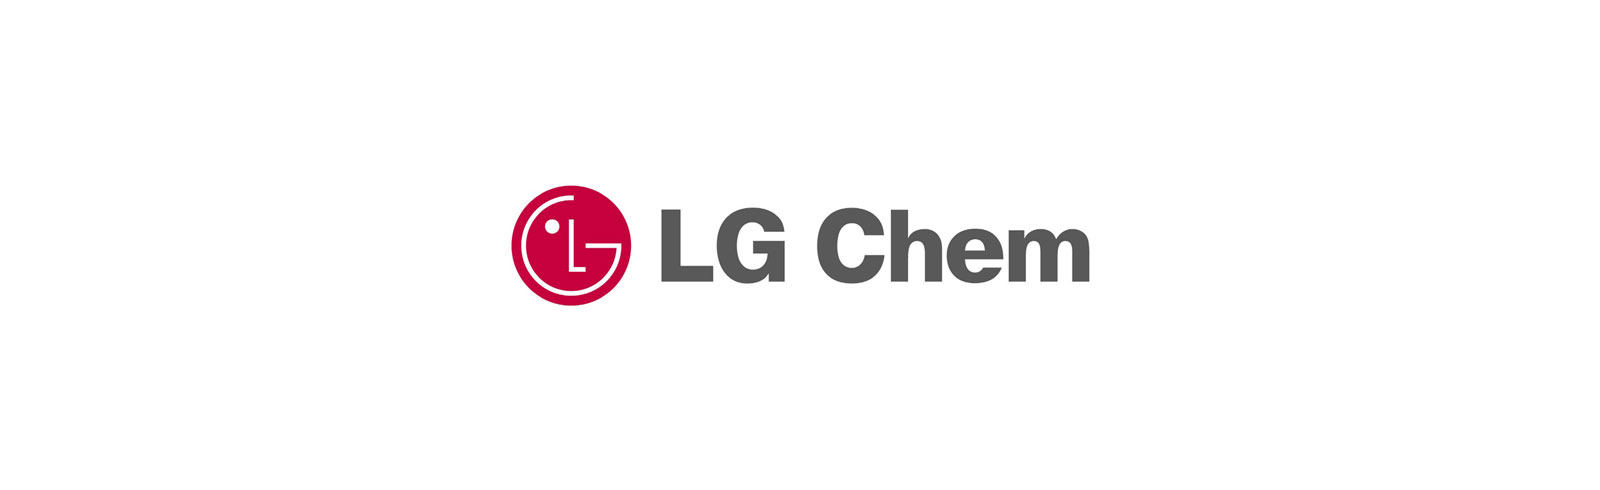 LG Chem aims to increase its EV battery sales five times in 2024